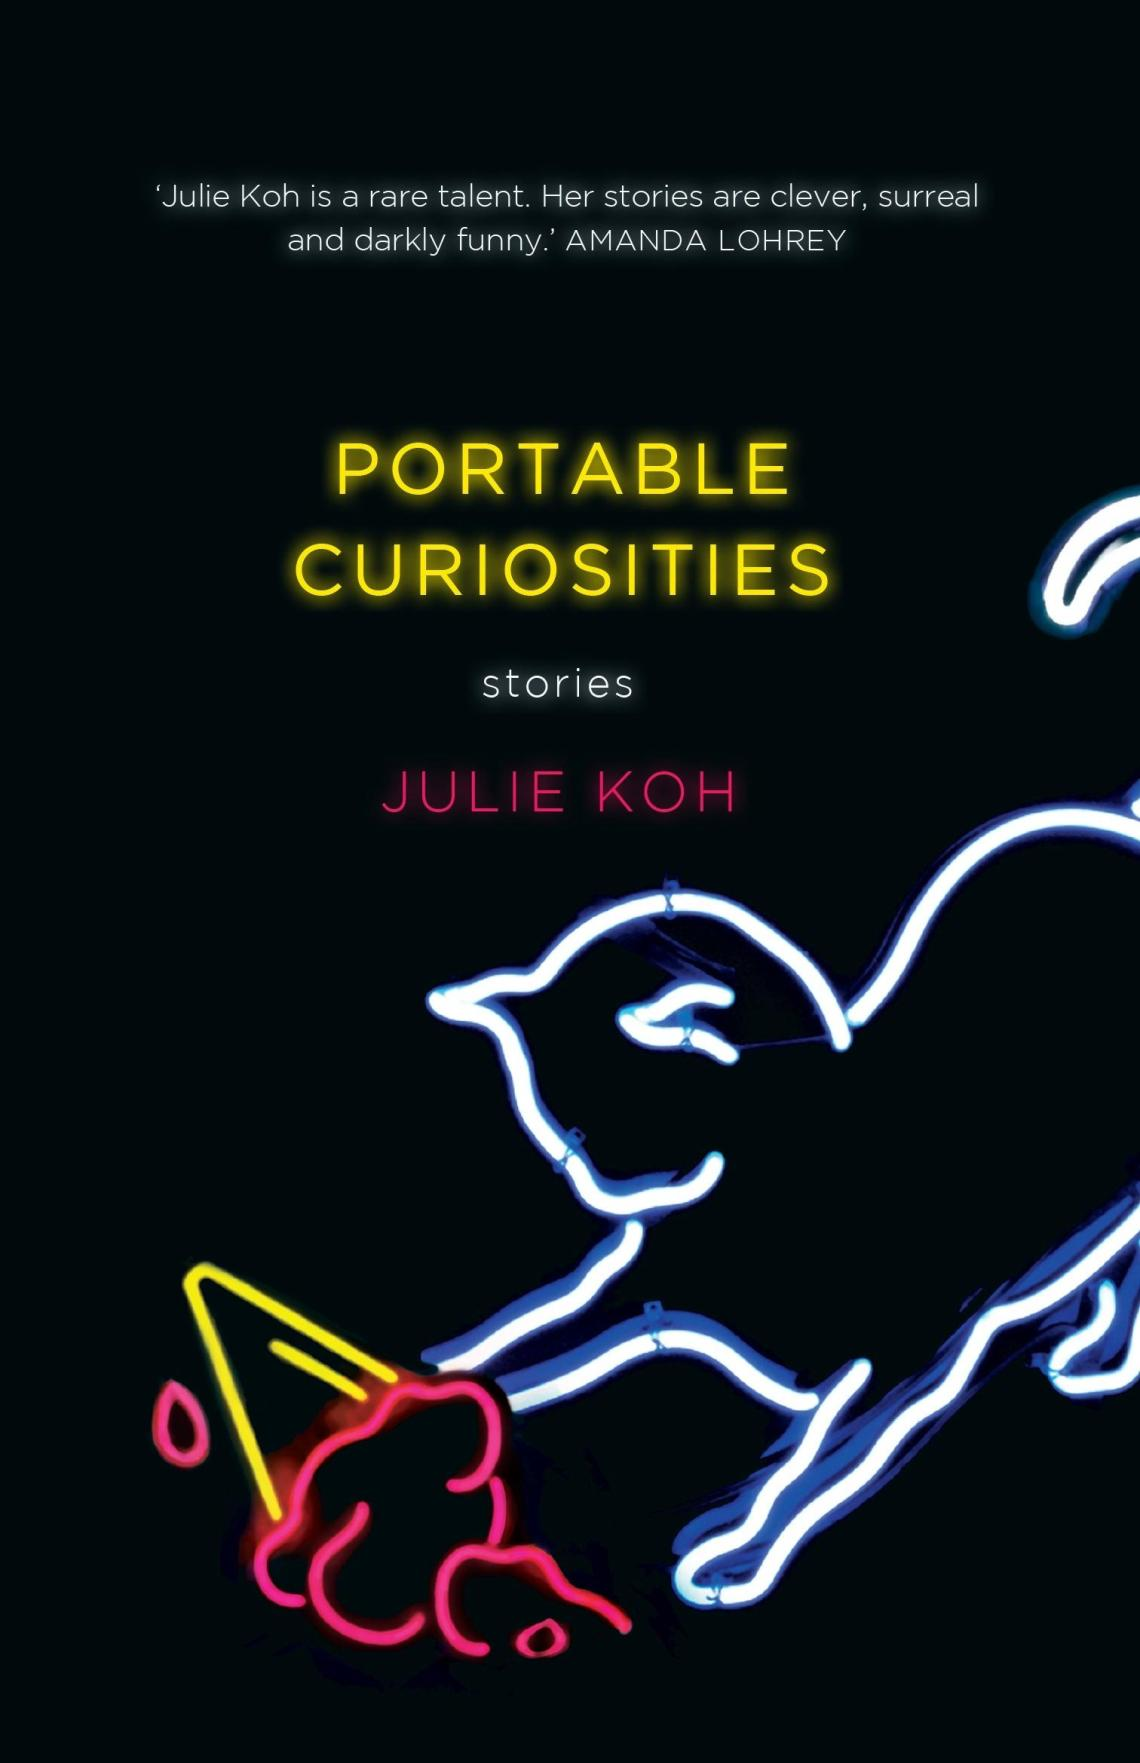 Cover of the book Portable curiosities by Julie Koh